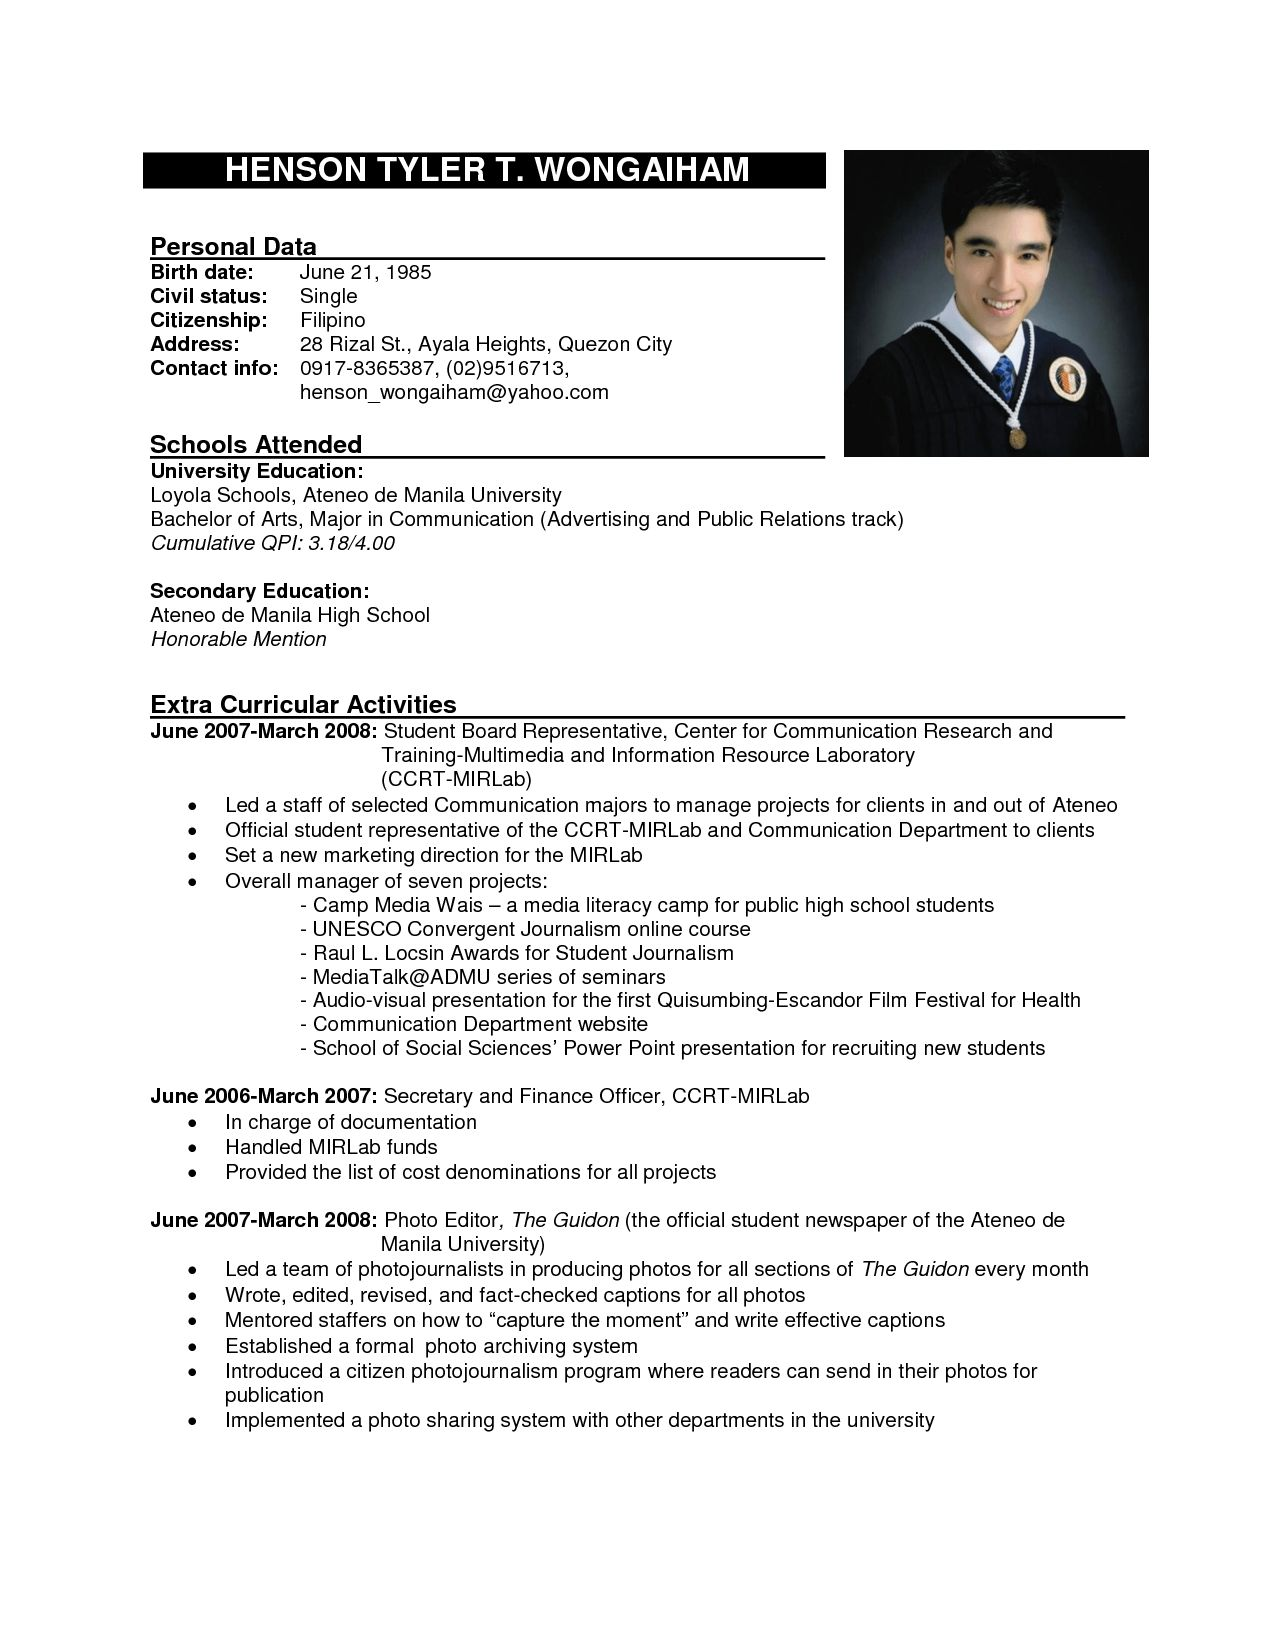 Resume Format Examples Marvellous Resume Sample Format Formal Training And Official